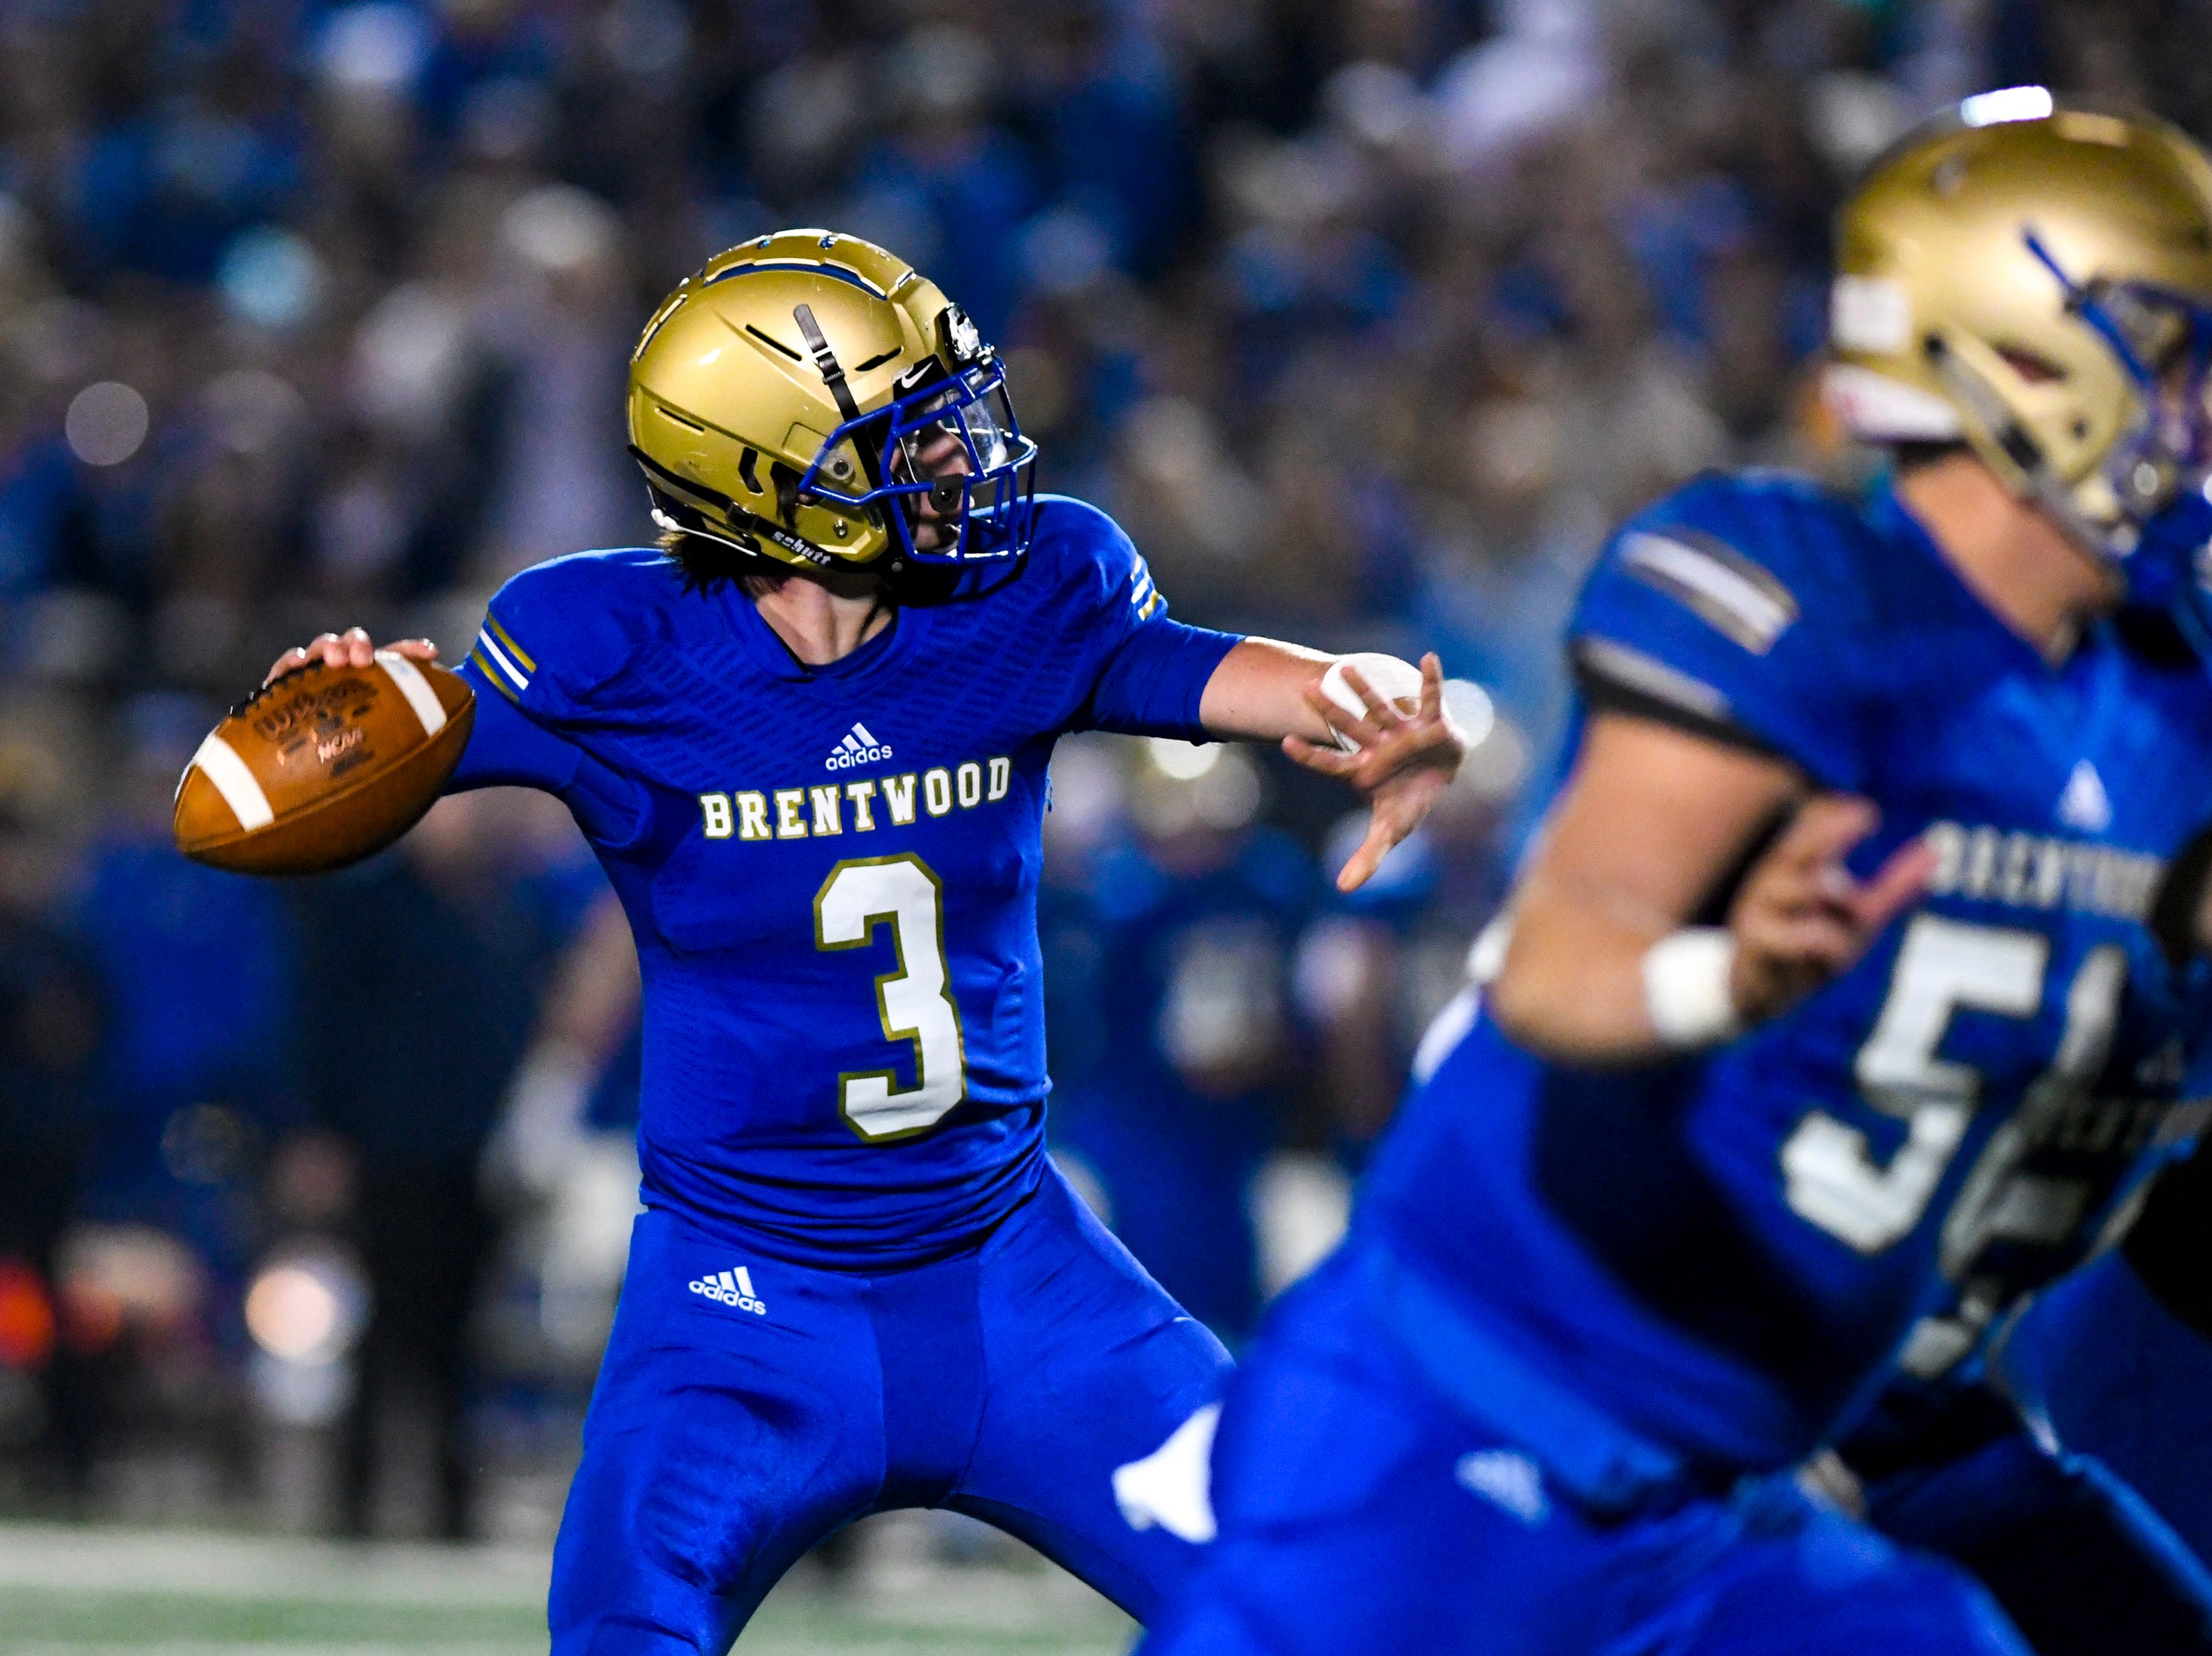 Brentwood's Cade Granzow (3) passes during Brentwood's game against Ravenwood at Brentwood High School in Brentwood on Friday, Nov. 16, 2018.